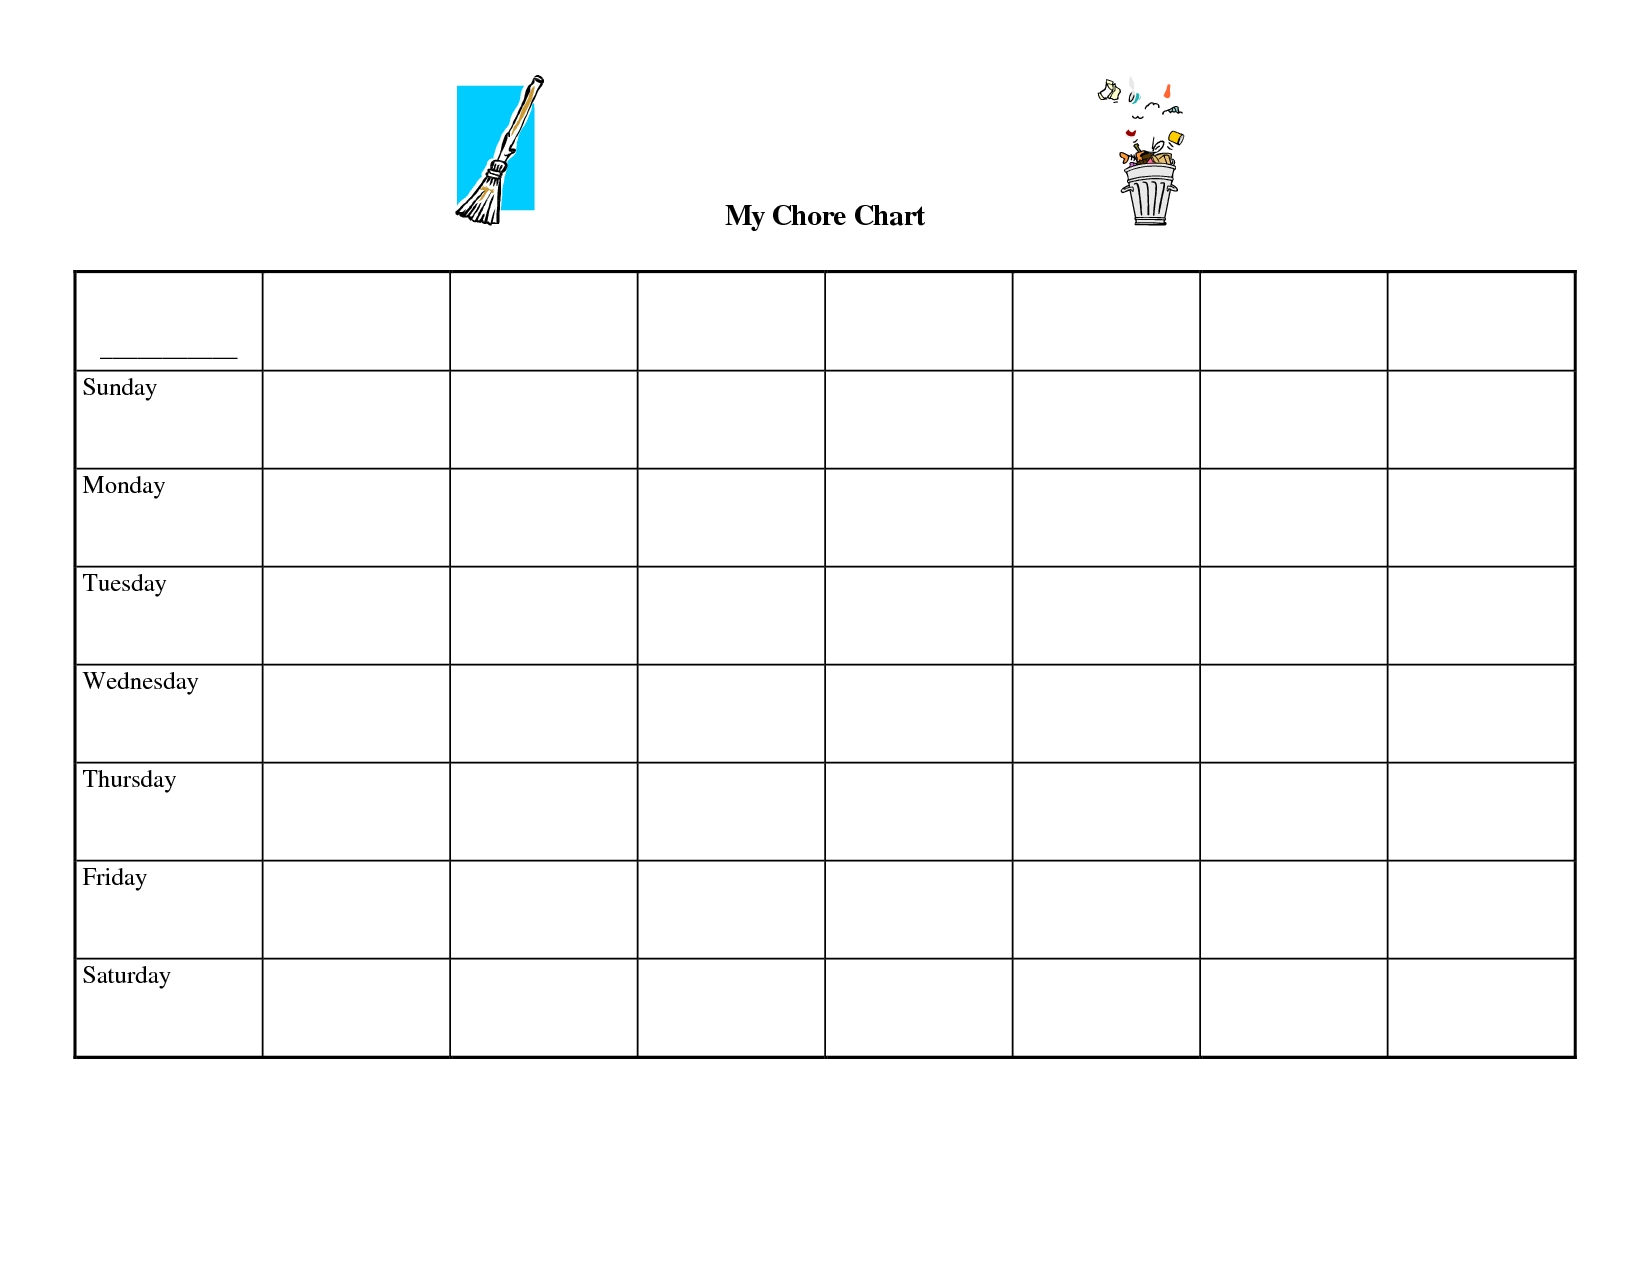 Free+Printable+Blank+Chore+Chart+Templates (With Images-Monday To Sunday Calendar Template Writing Practice